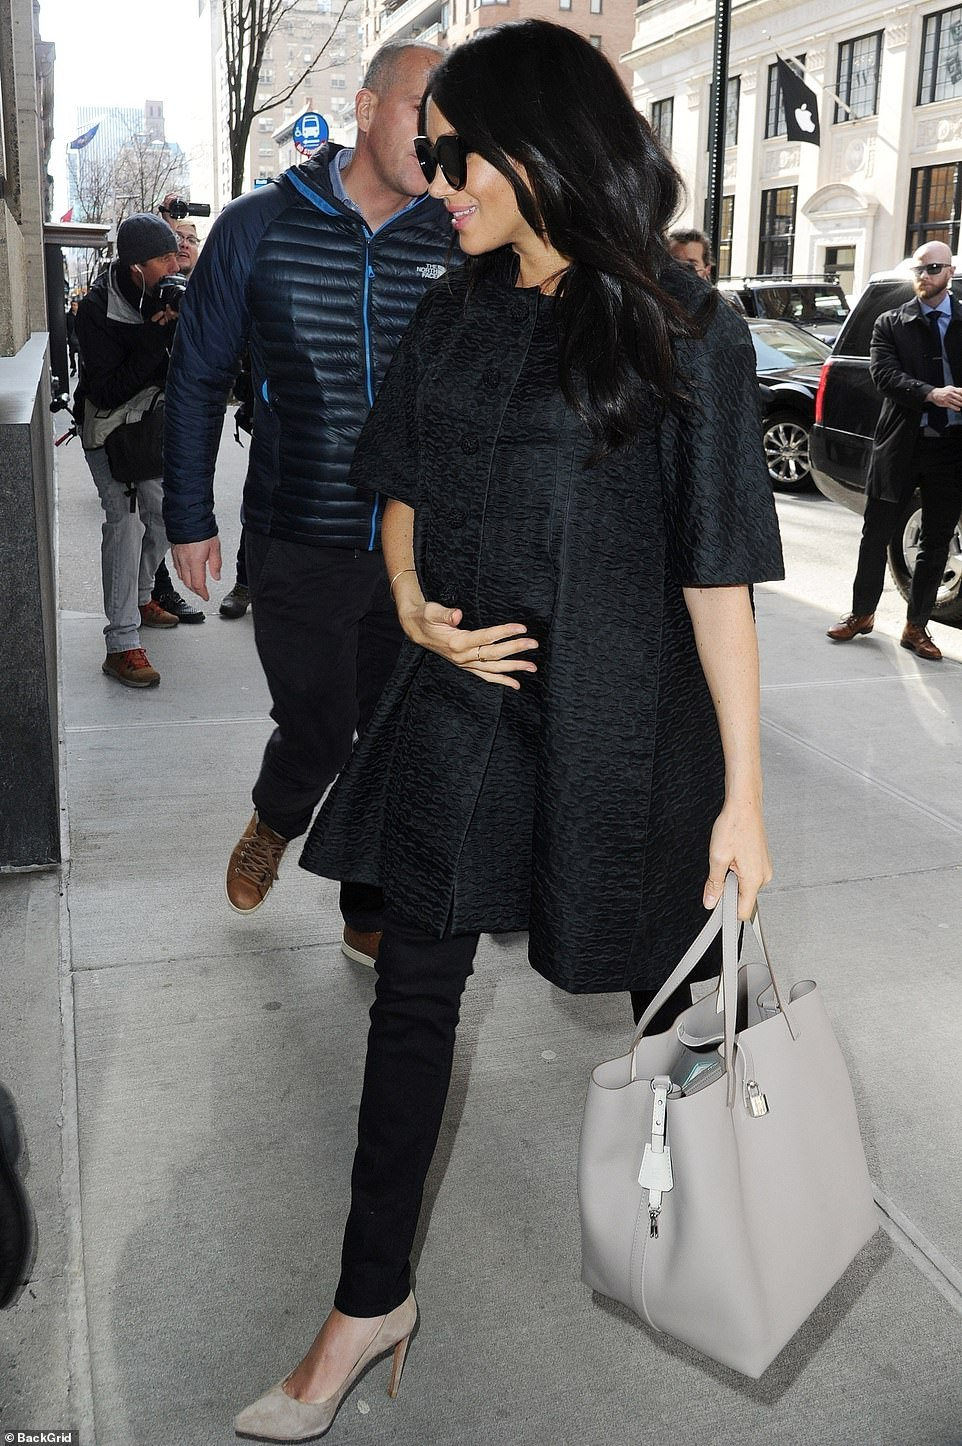 Time for some culture: Earlier in the day, Meghan spent time enjoying the sights and sounds of the Upper East Side, including a trip to the Met Breuer art museum